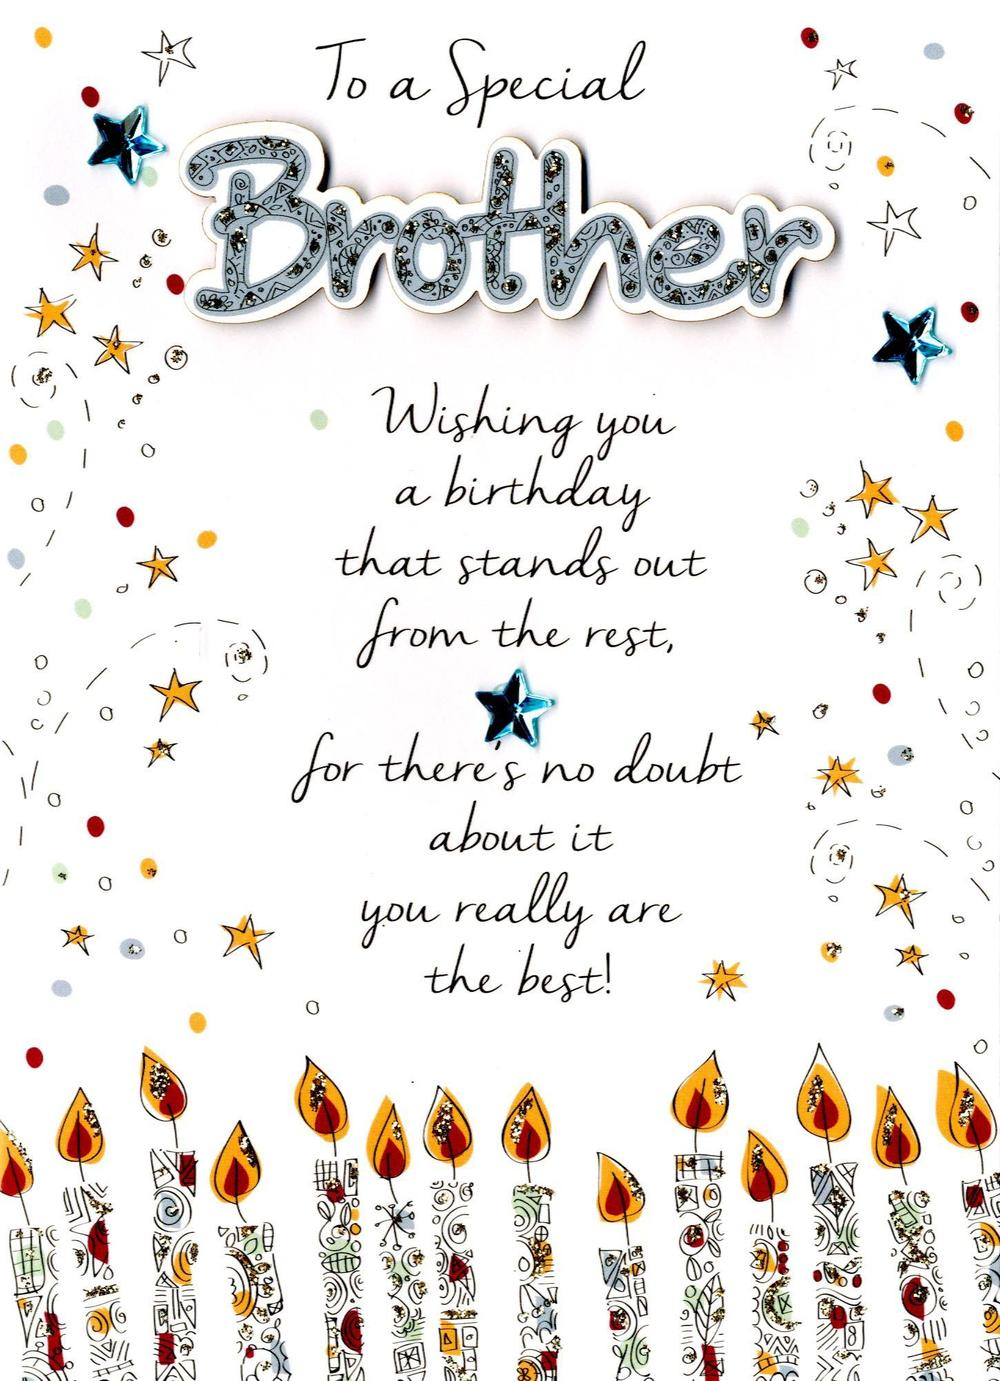 Special brother happy birthday greeting card cards love kates special brother happy birthday greeting card m4hsunfo